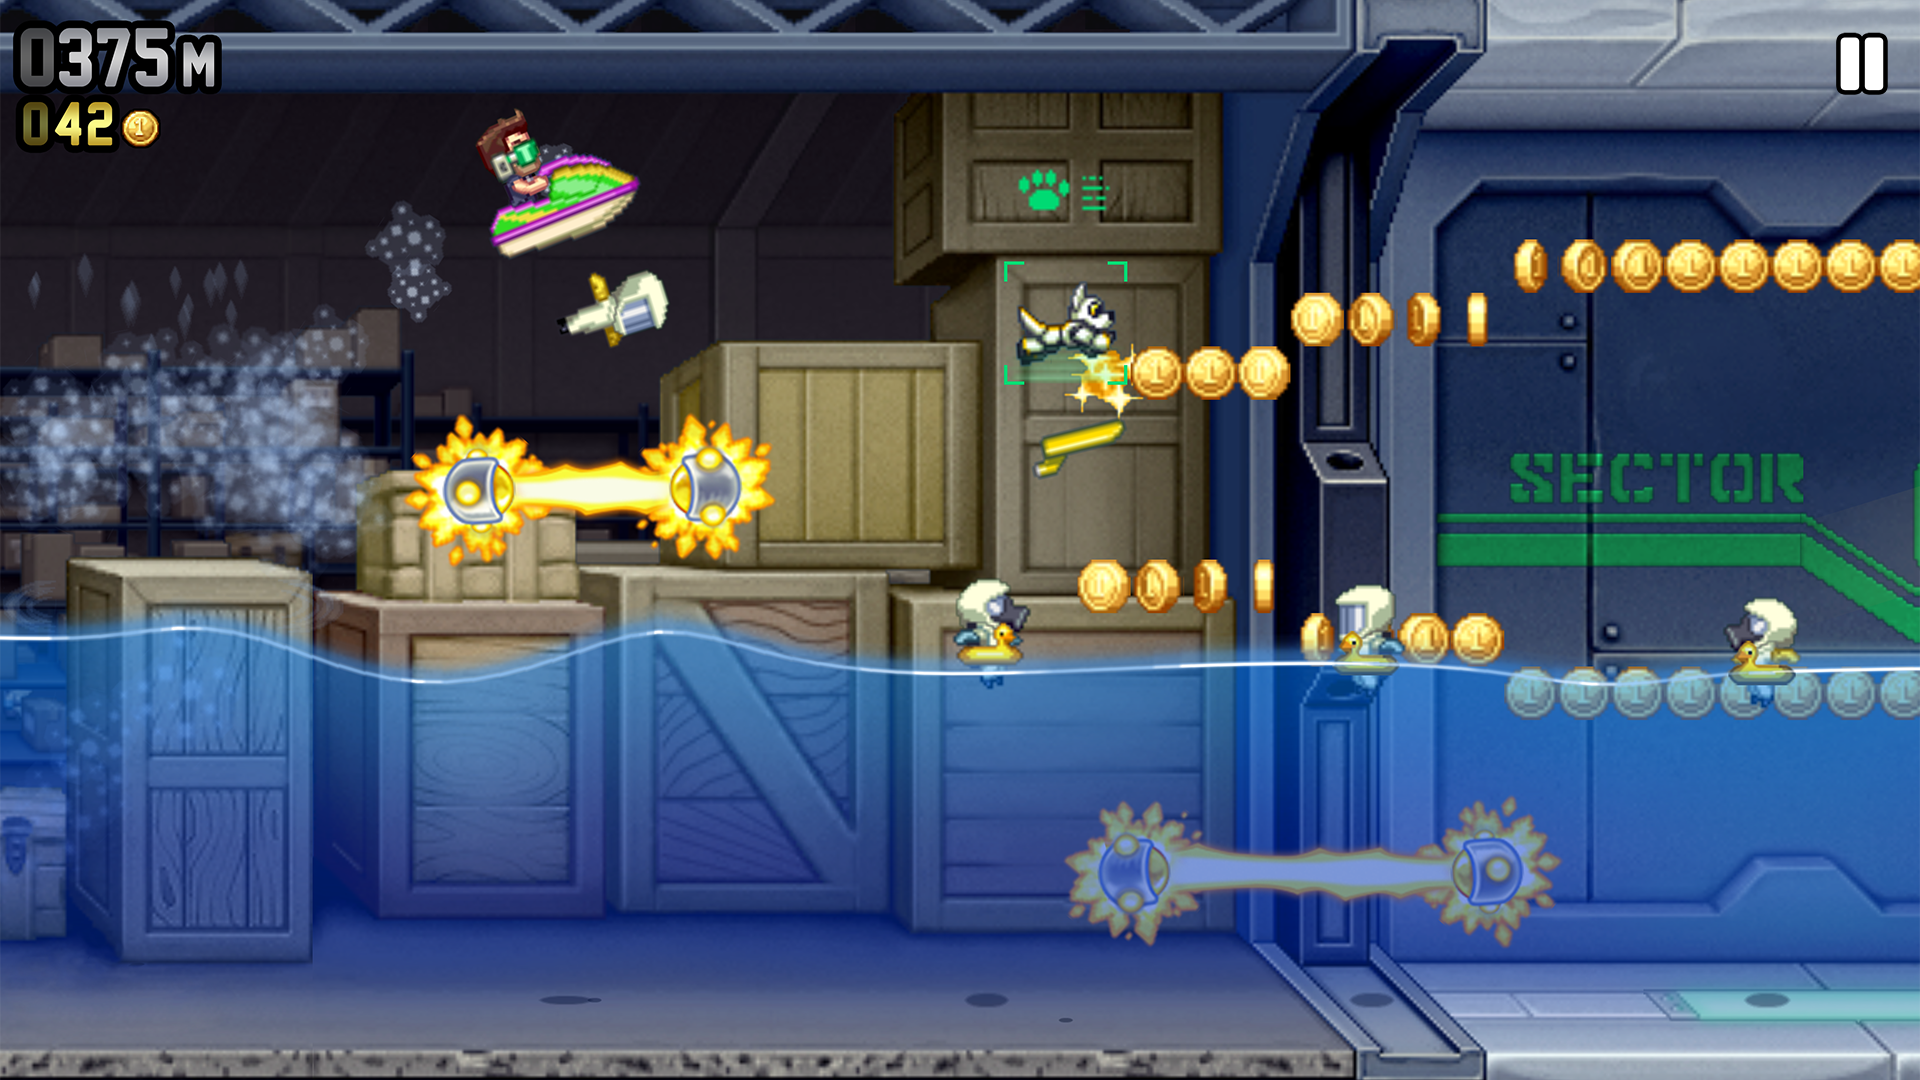 Jetpack Joyride: Amazon.co.uk: Appstore for Android